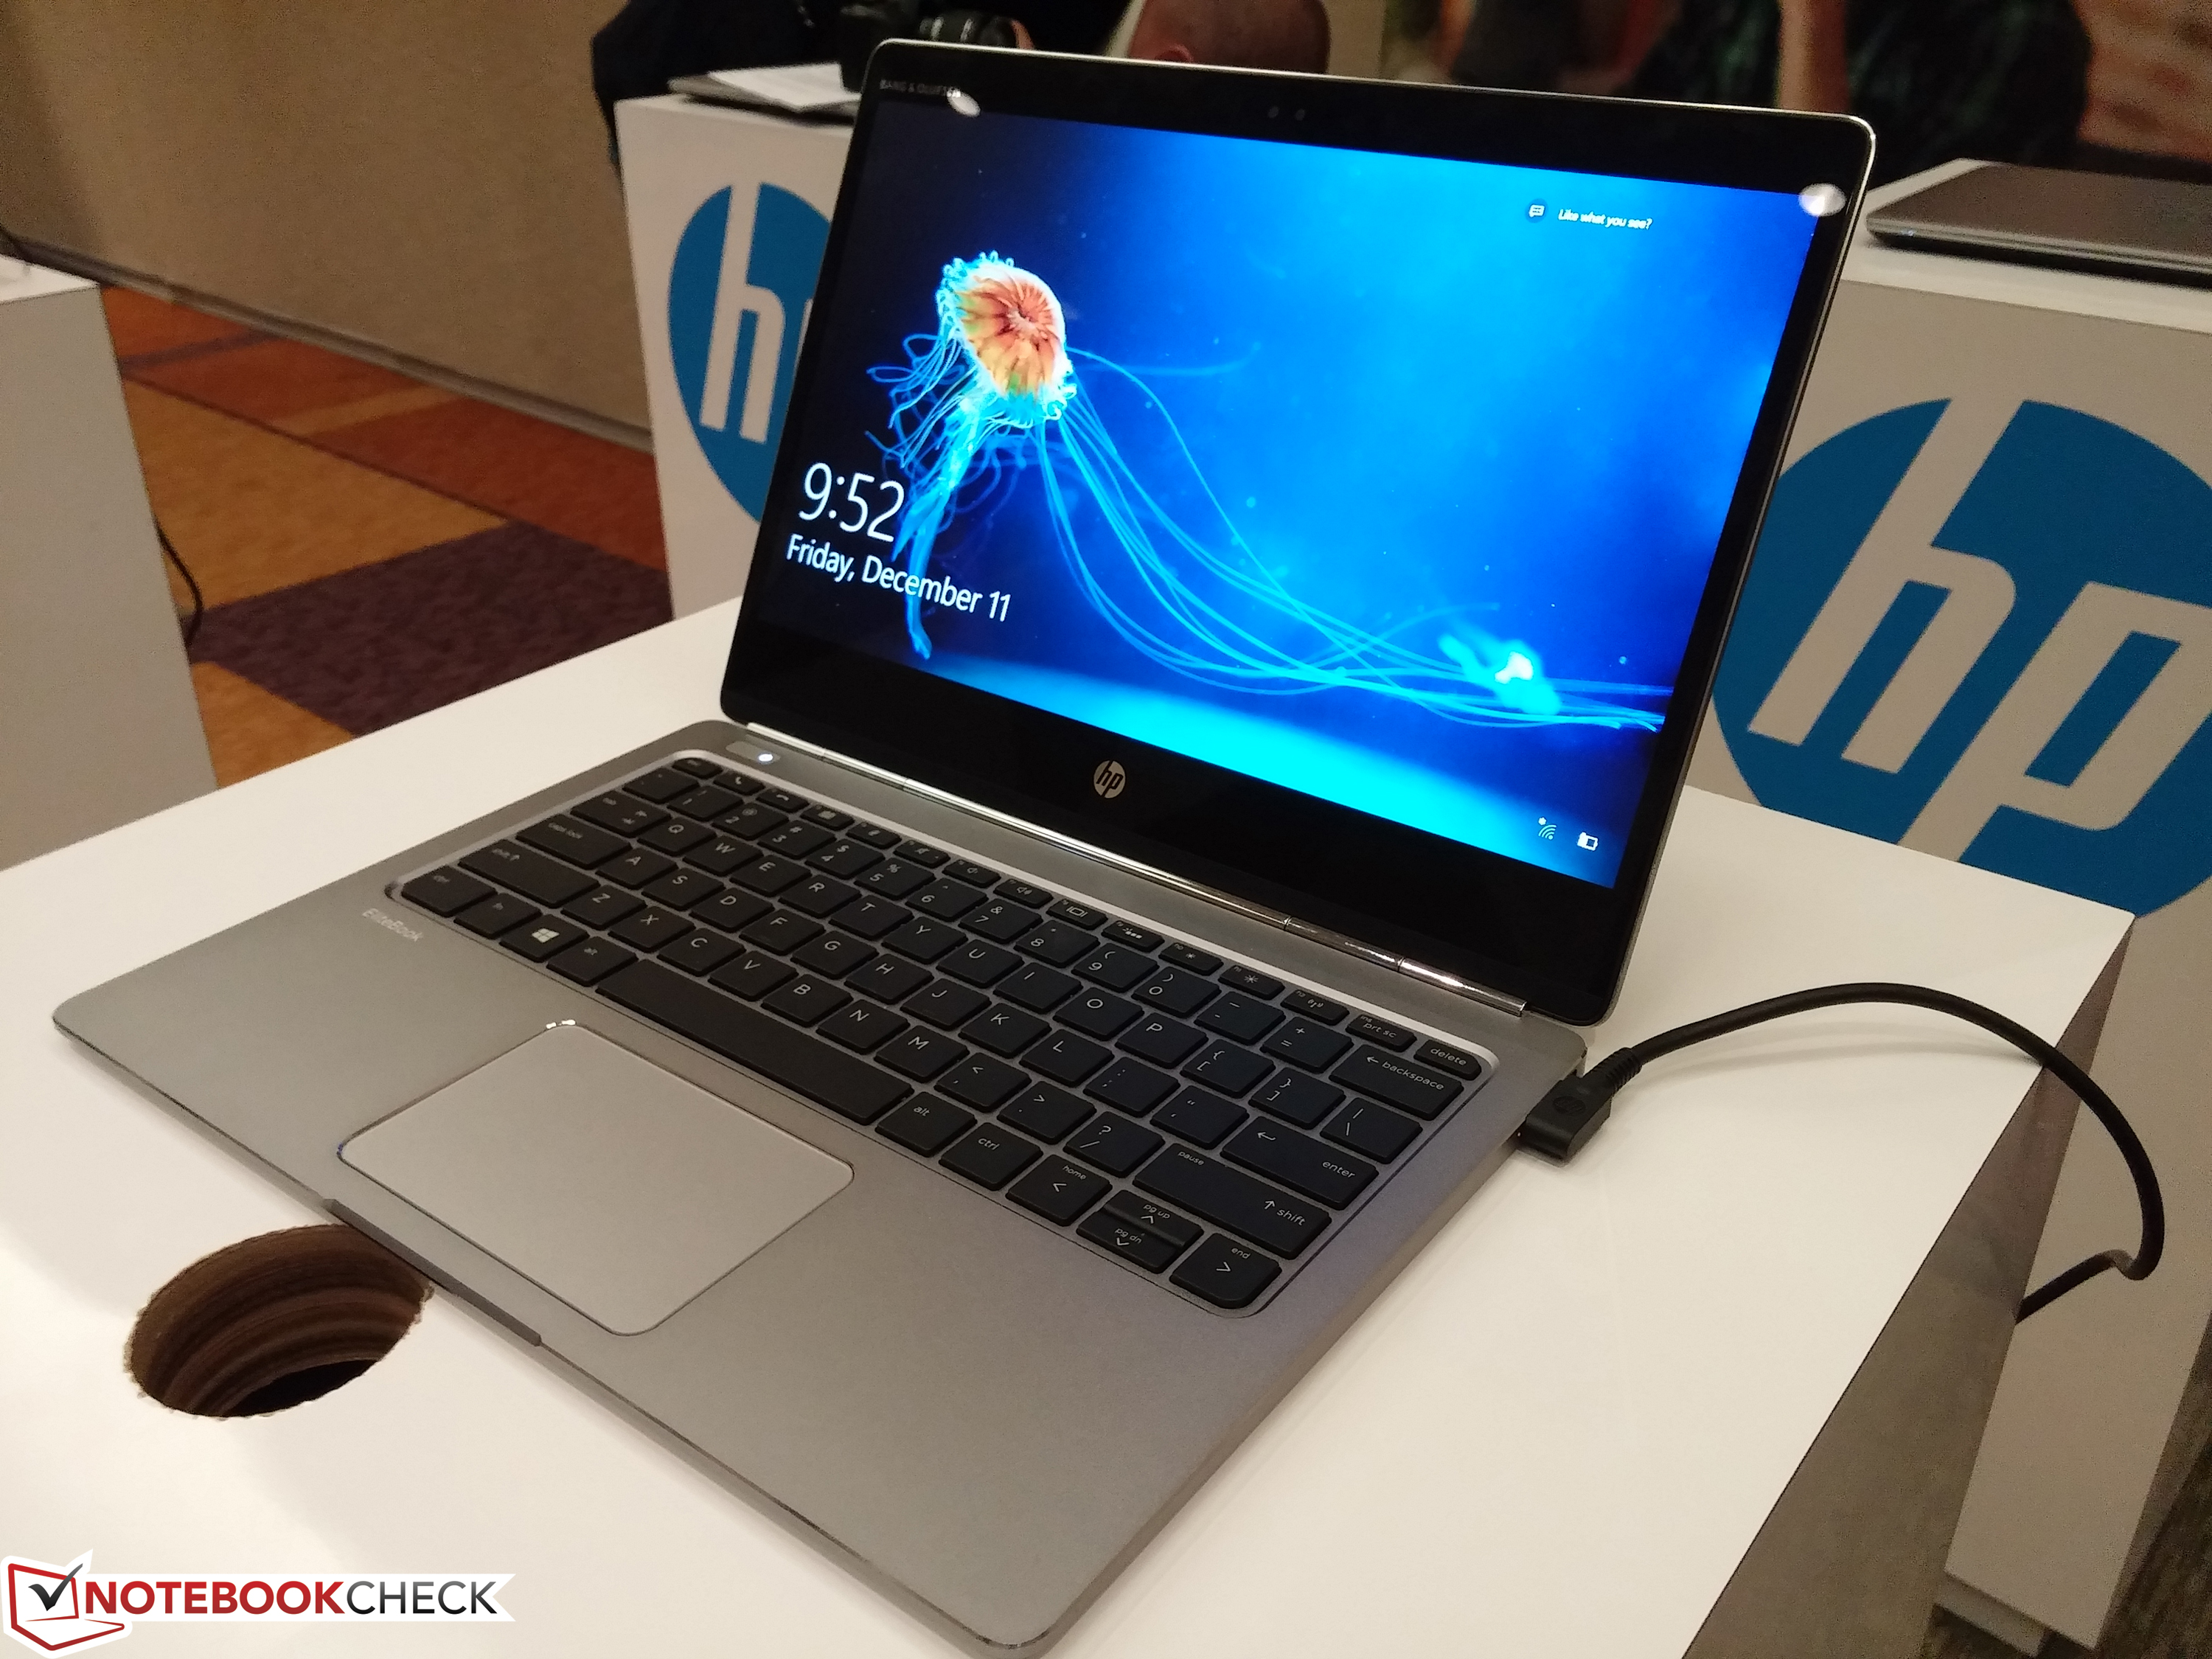 Hp Unveils Elitebook Folio G1 As World U0026 39 S Lightest And Thinnest Business Notebook